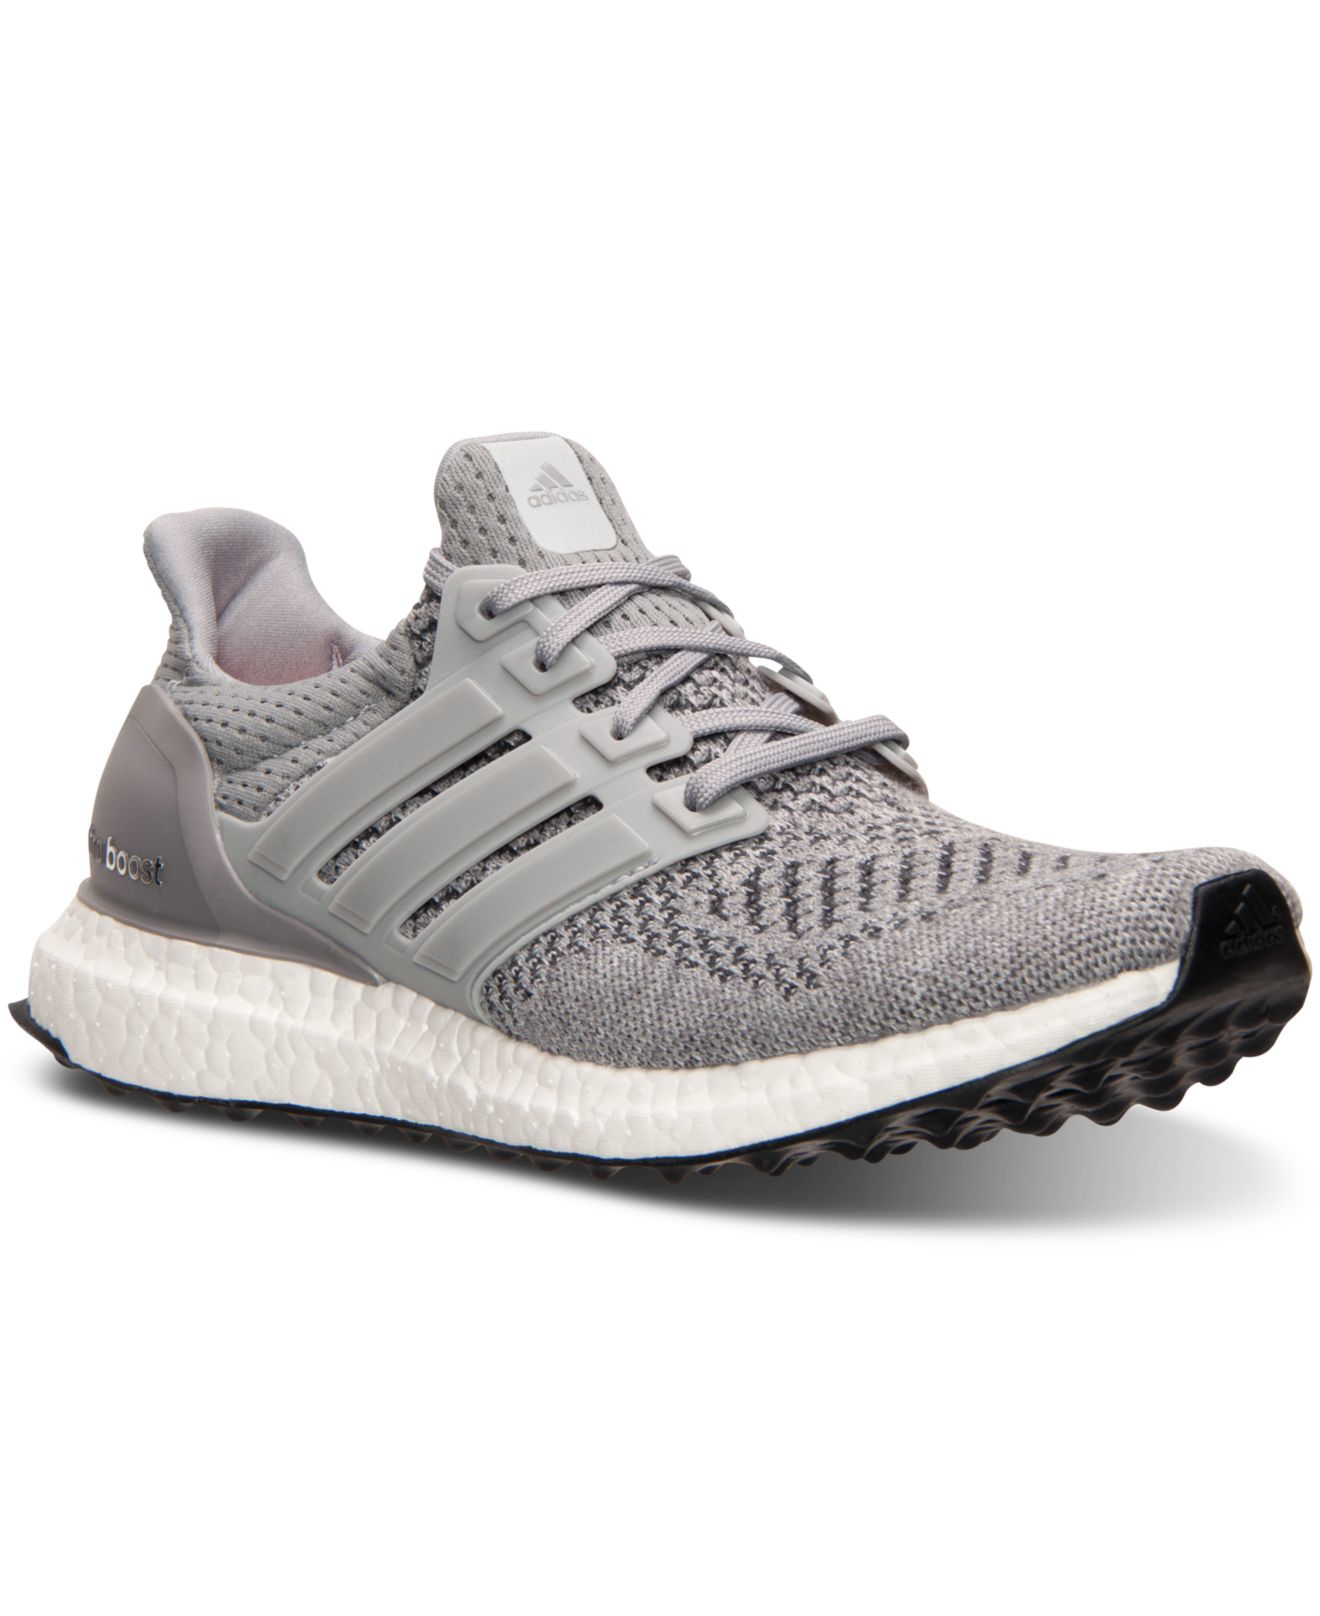 ed6b8b05c ... promo code for lyst adidas mens ultra boost running sneakers from  finish line in bf453 12ca8